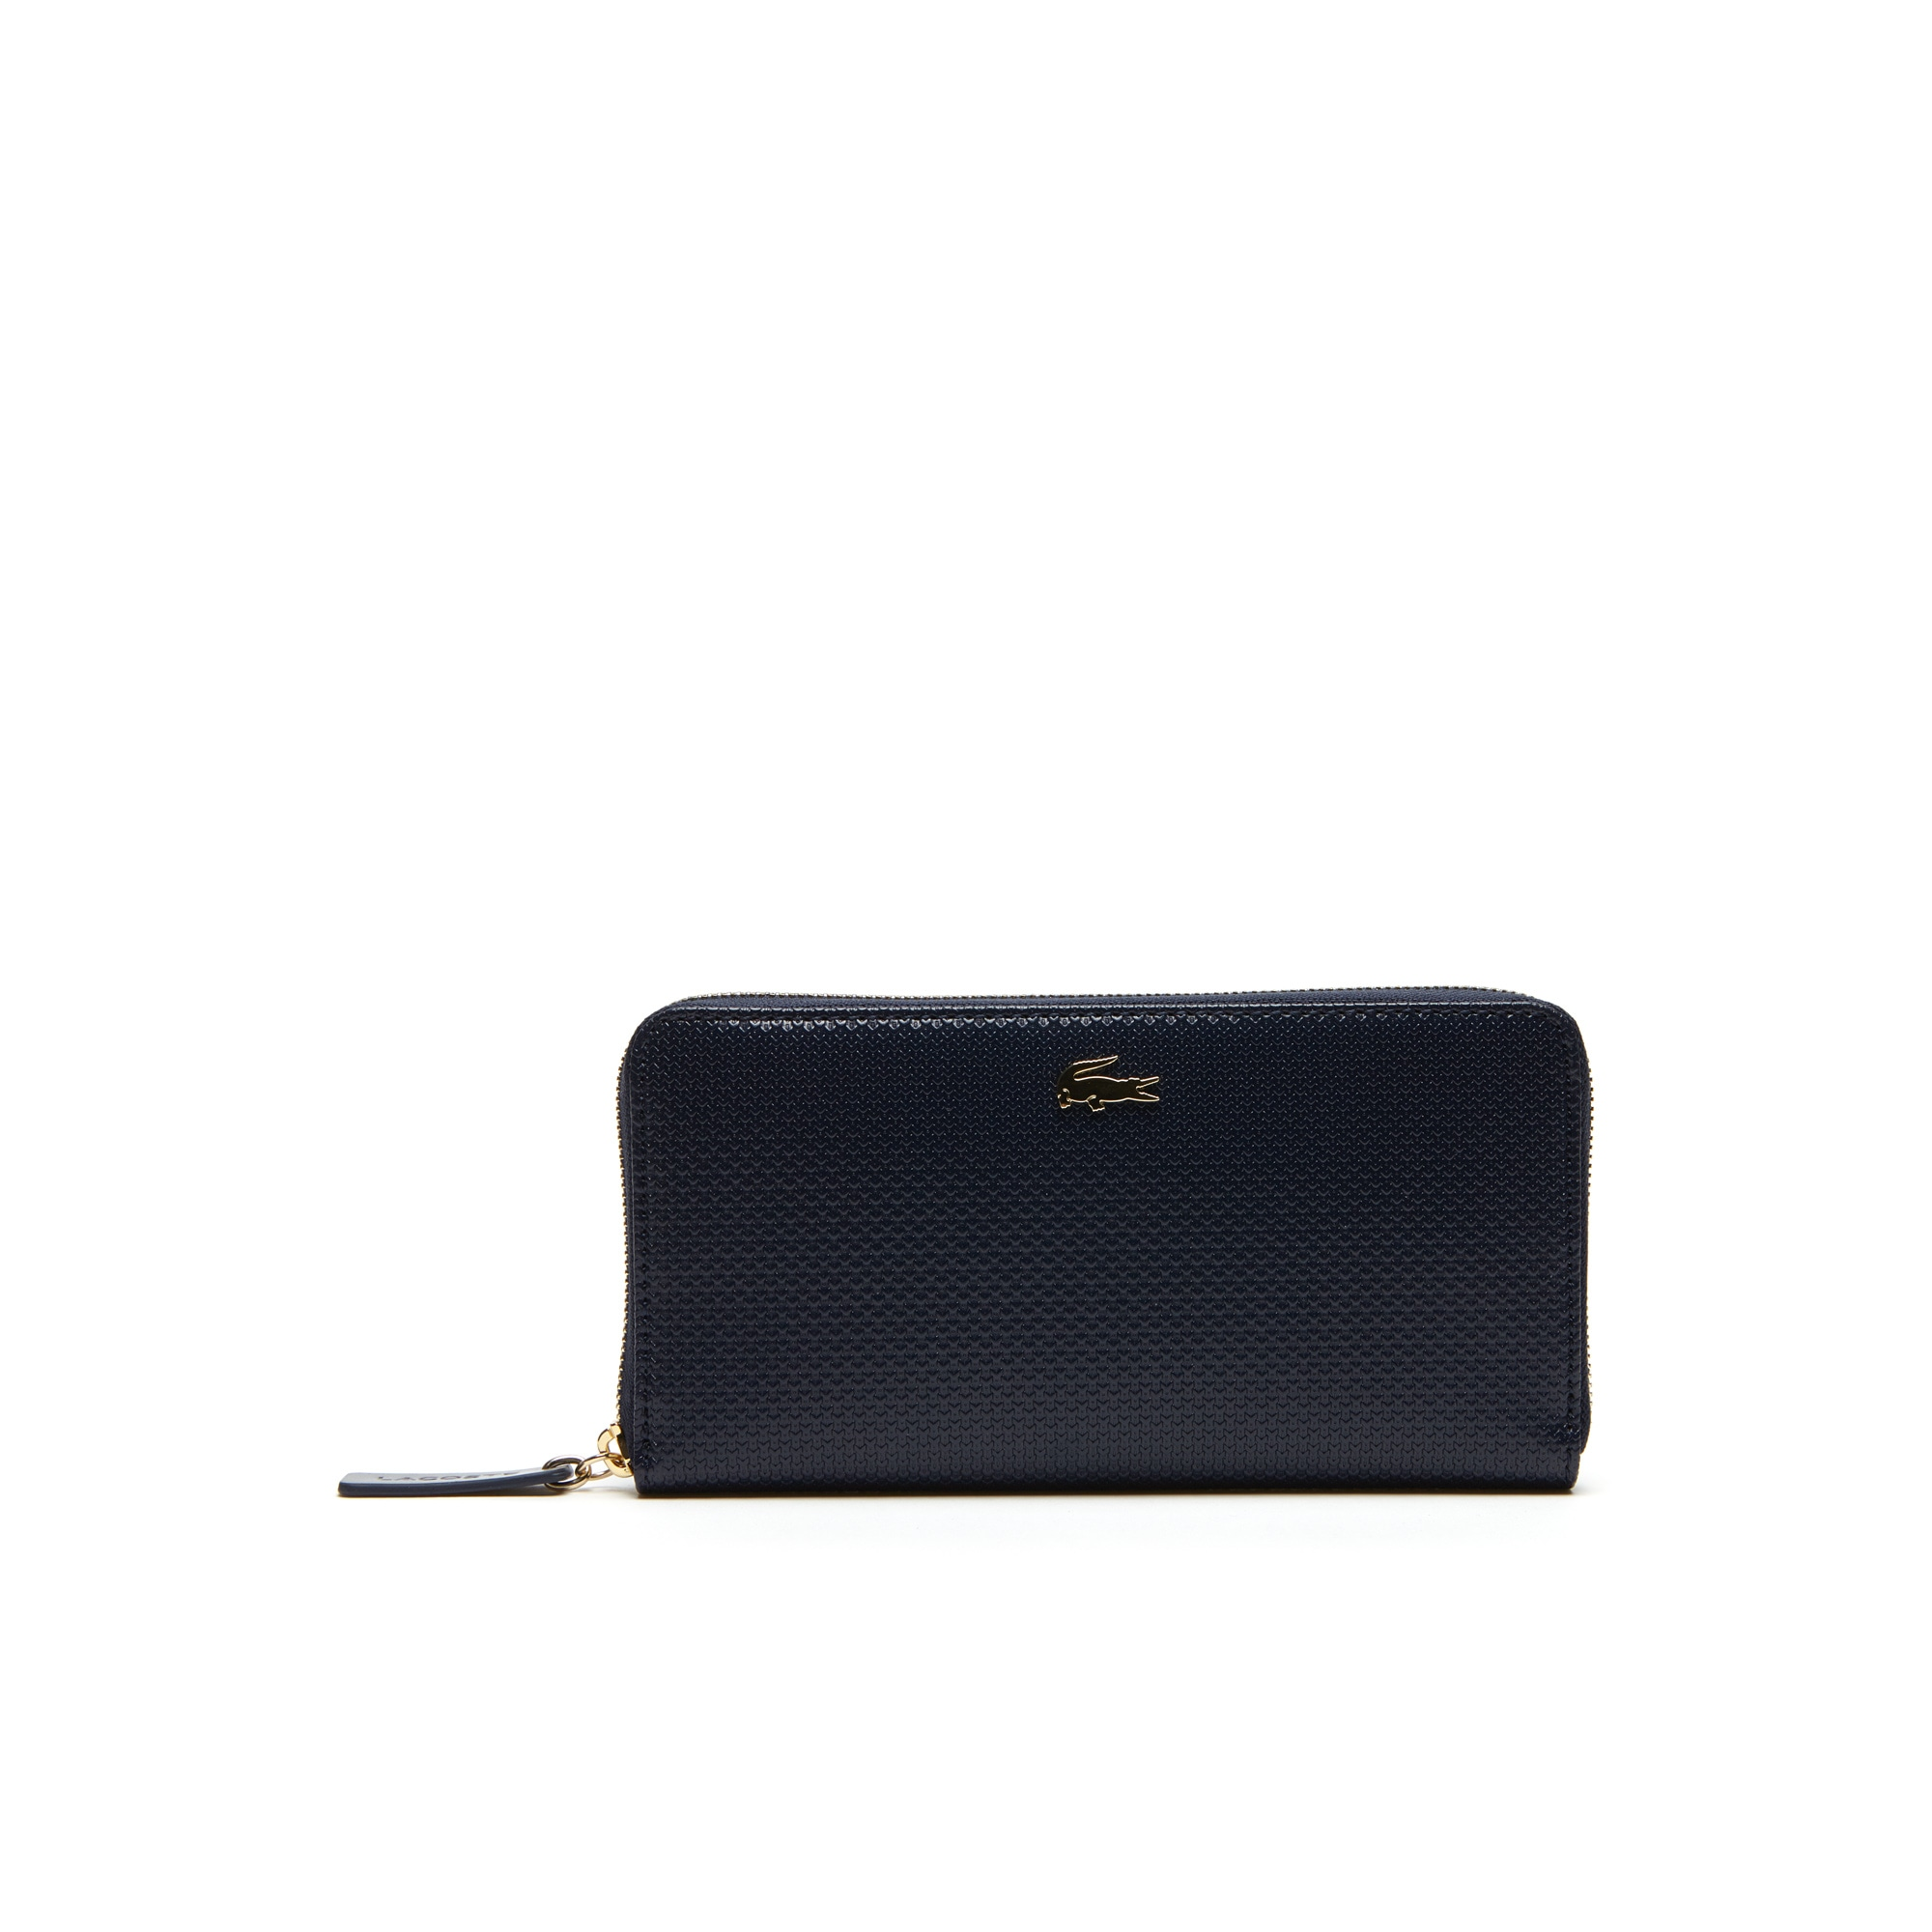 Chantaco zip wallet in leather